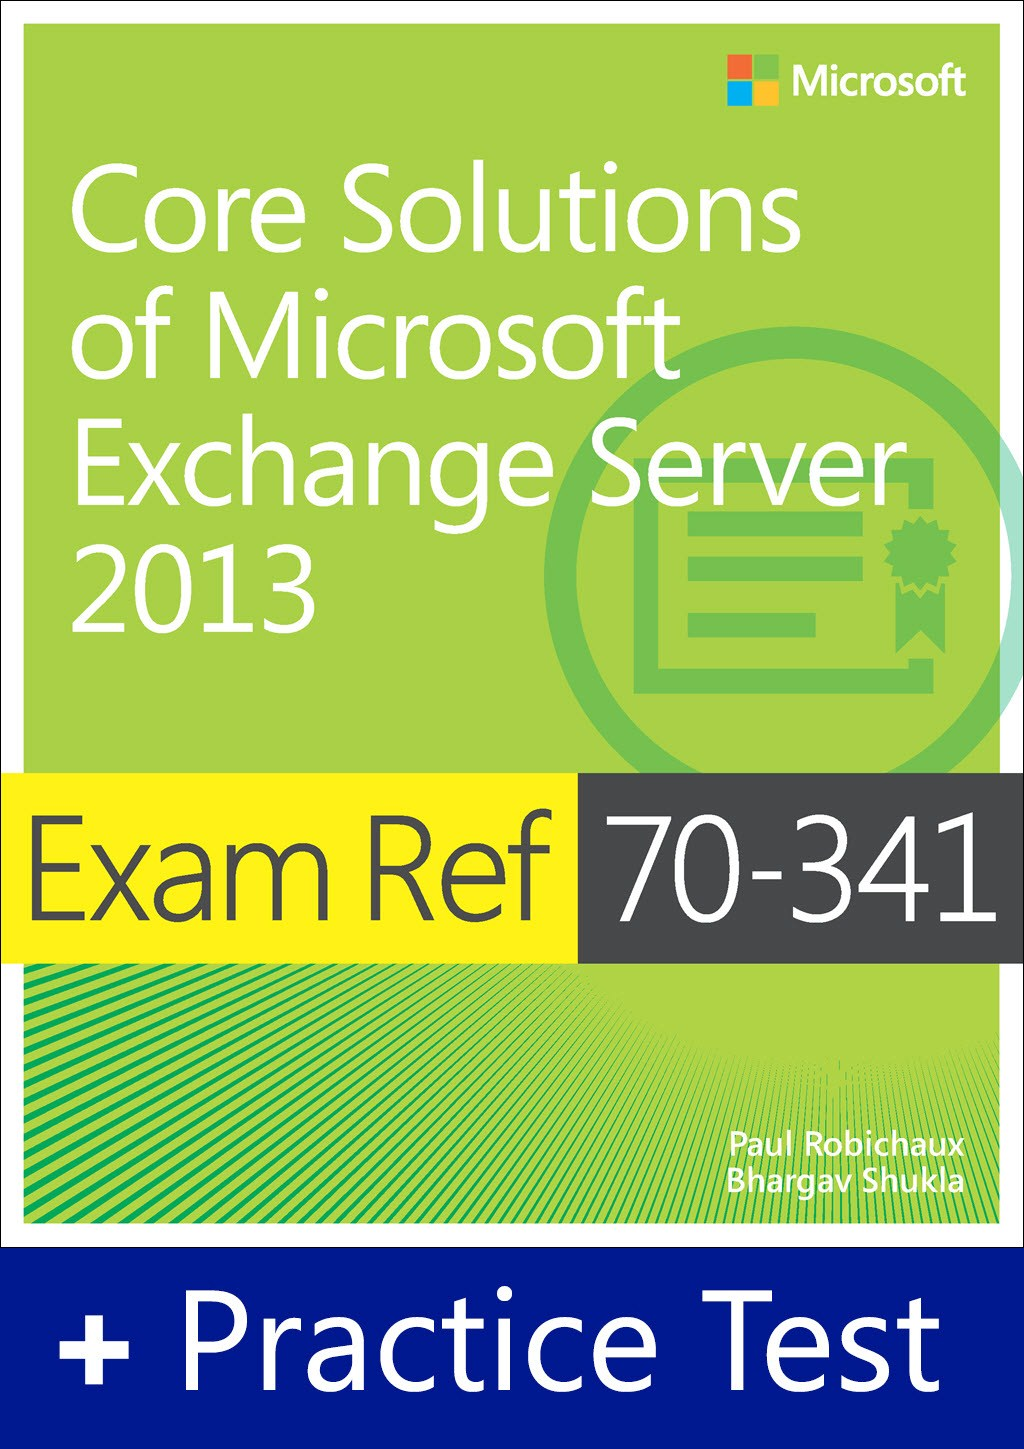 Exam Ref 70-341 Core Solutions of Microsoft Exchange Server 2013 with Practice Test